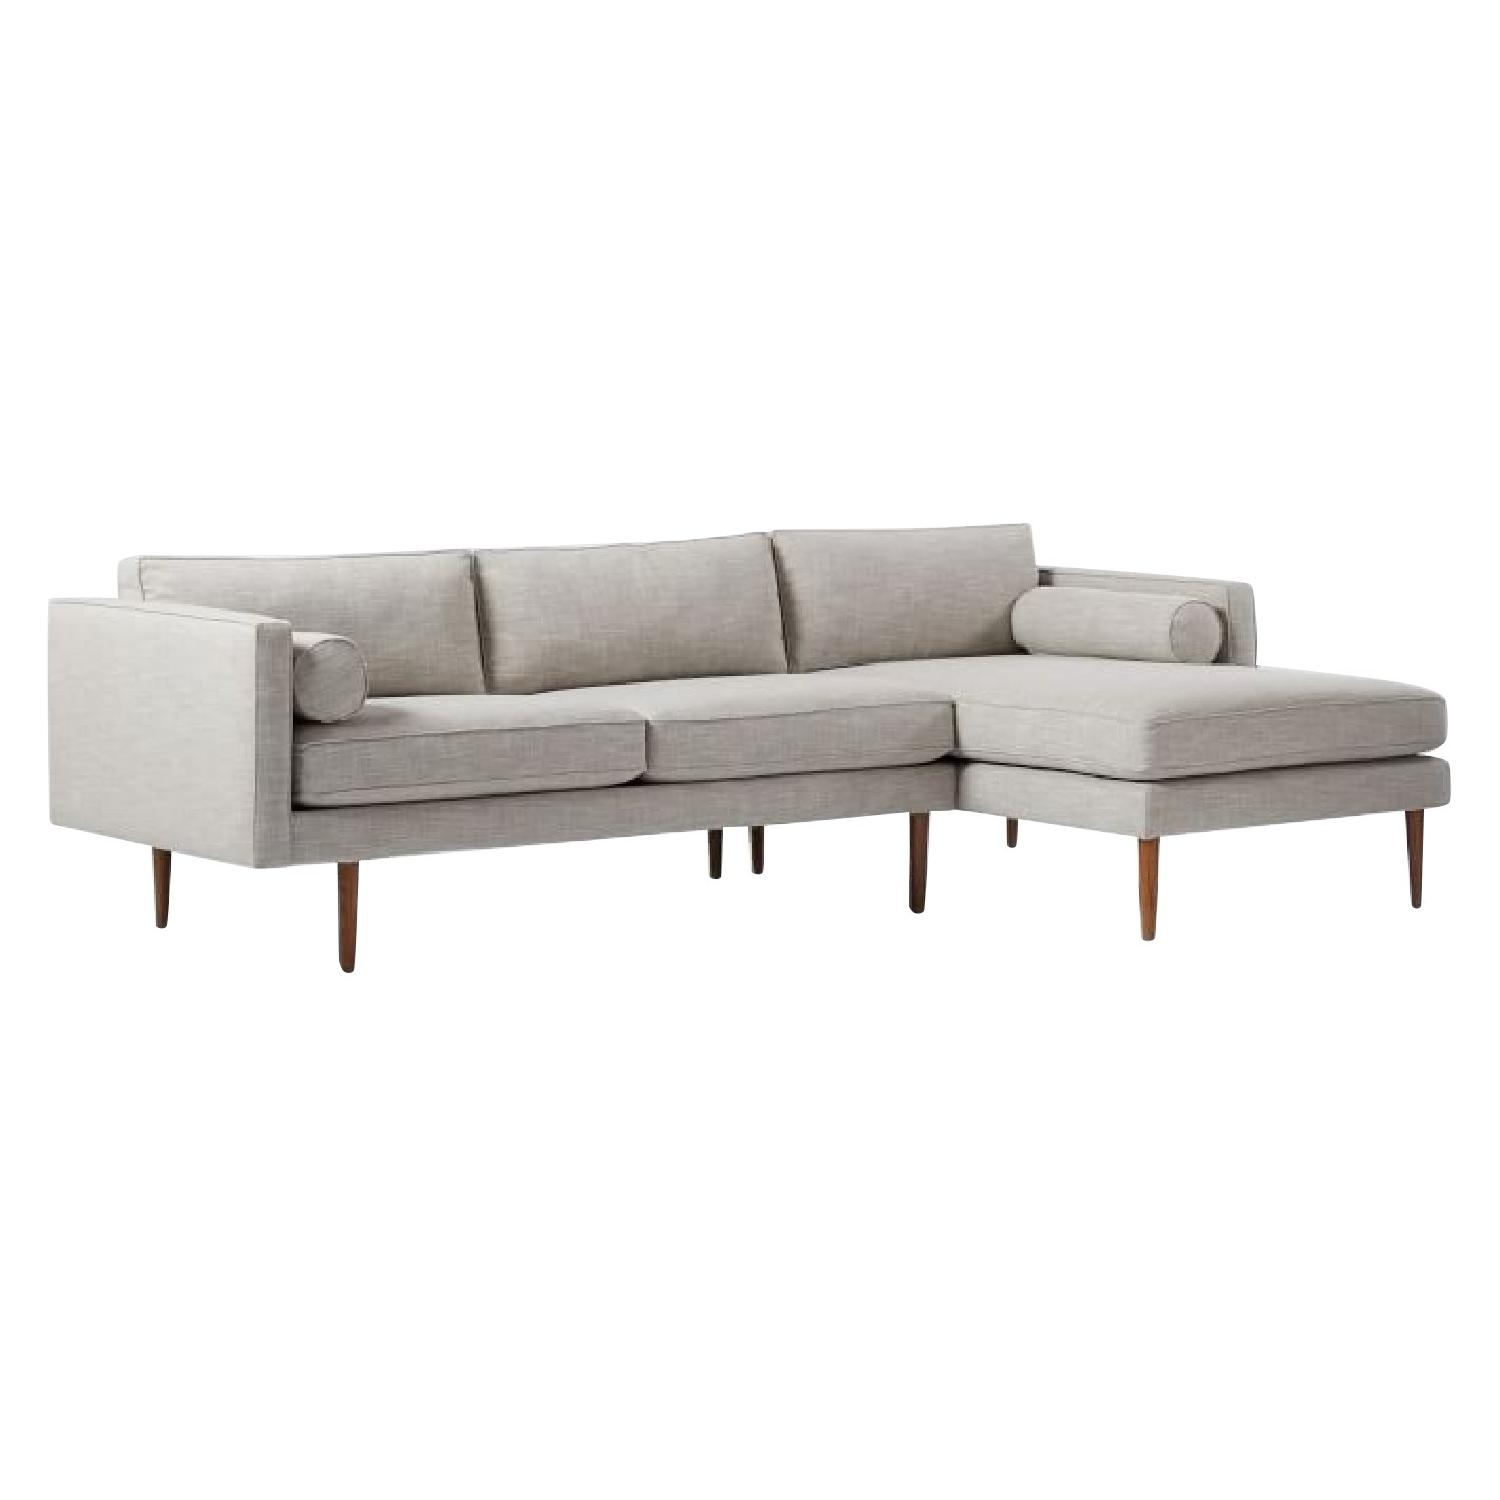 West Elm Monroe Mid Century 2 Piece Chaise Sectional Sofa ...